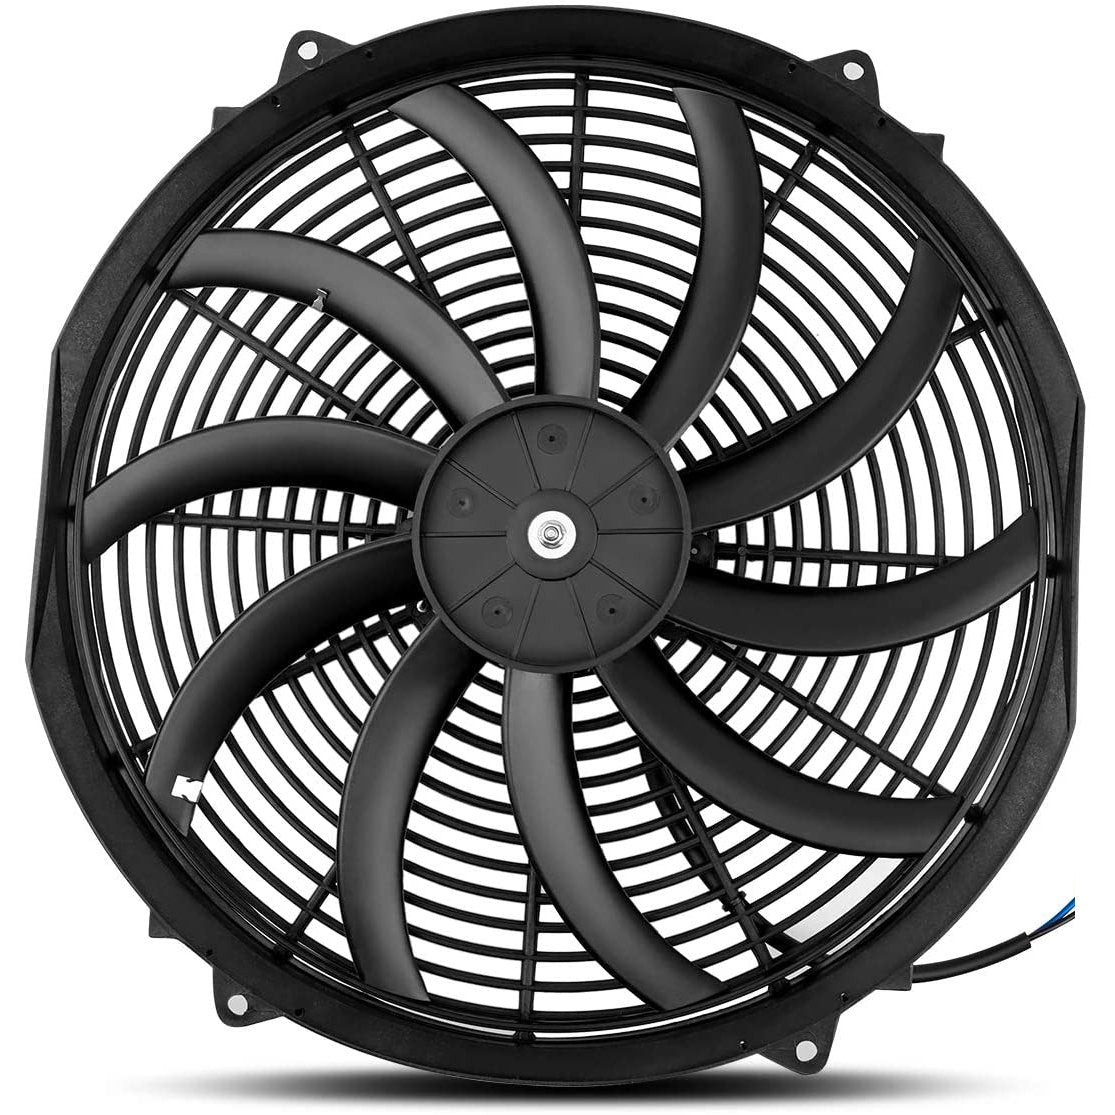 "Dual 16"" Inch Electric Fans 12 Volt Radiator Cooling Fan Upgraded 130W Motor Best High CFM-Dual Electric Fans-American Volt-American Volt"